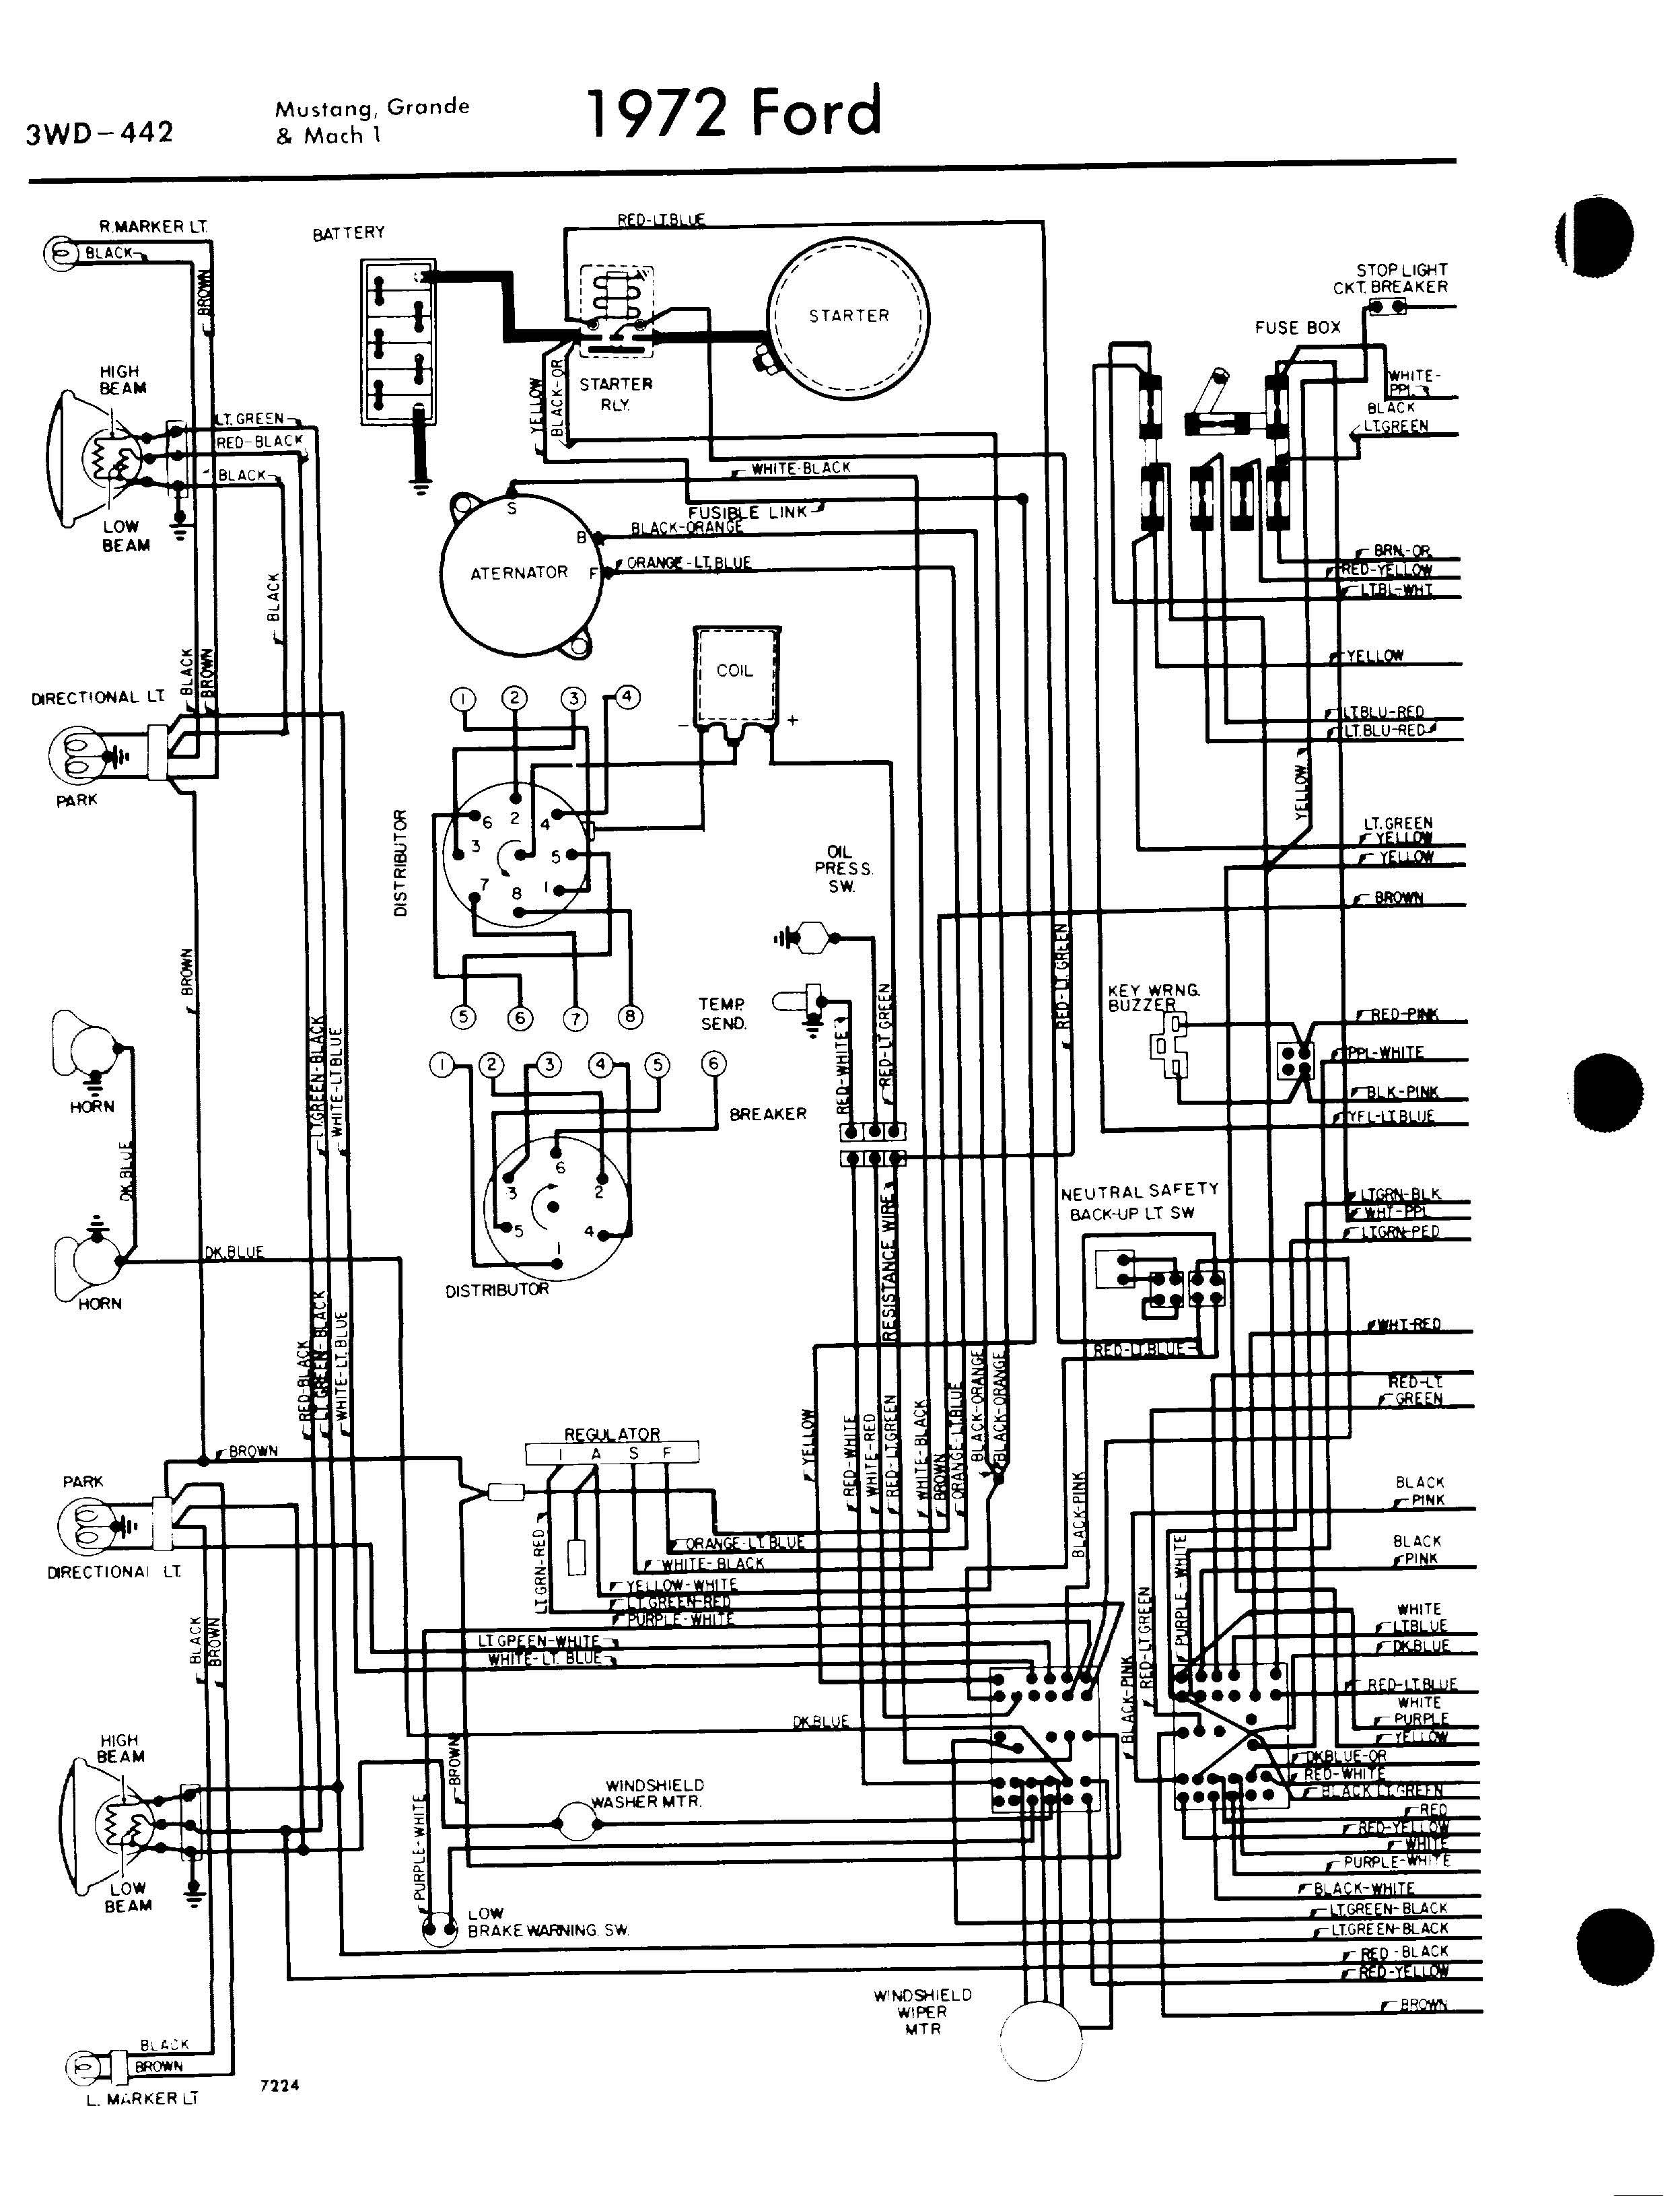 Miraculous Harness Diagram Ford Mustang Ignition Switch Wiring Diagram 1973 Wiring Cloud Photboapumohammedshrineorg